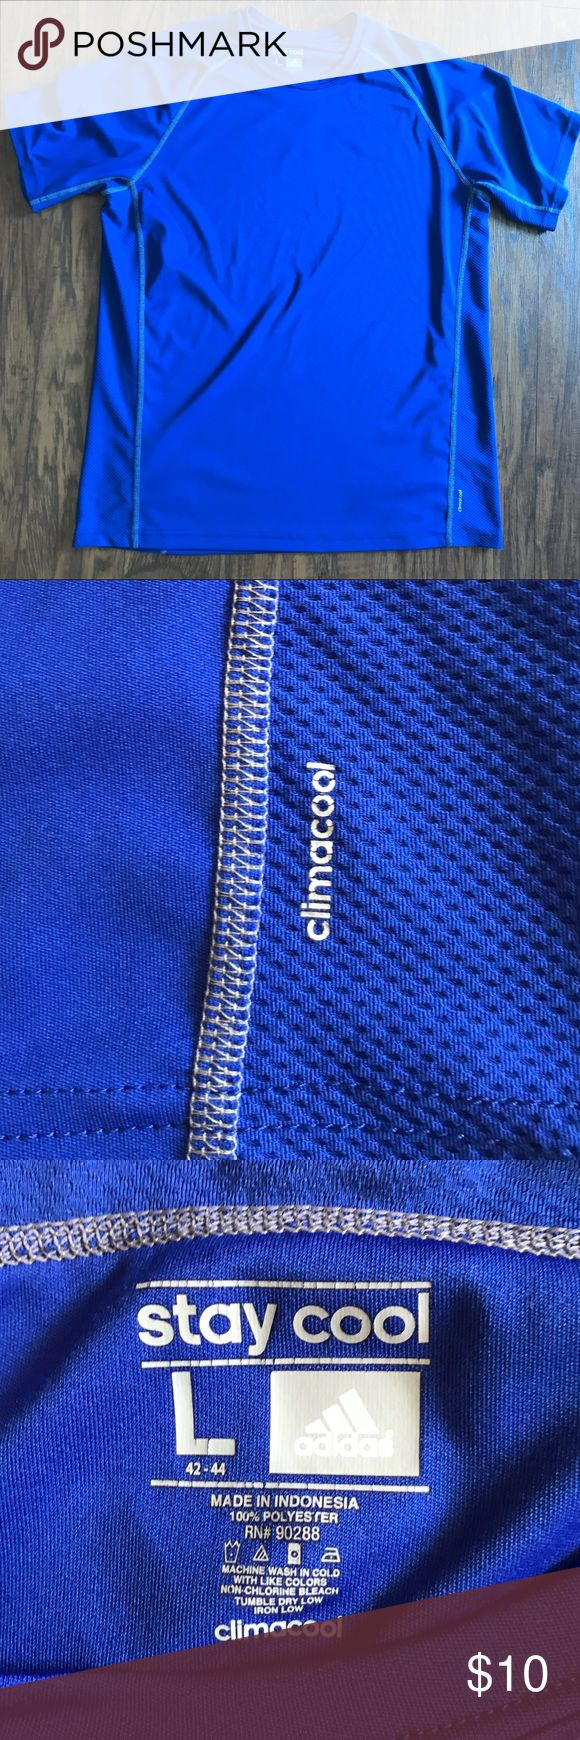 Adidas Royal Blue Climacool Short Sleeve Shirt Adidas workout climacool shirt in royal blue. Very light and perfect for exercising. Only worn once, so it is like new adidas Shirts Tees - Short Sleeve